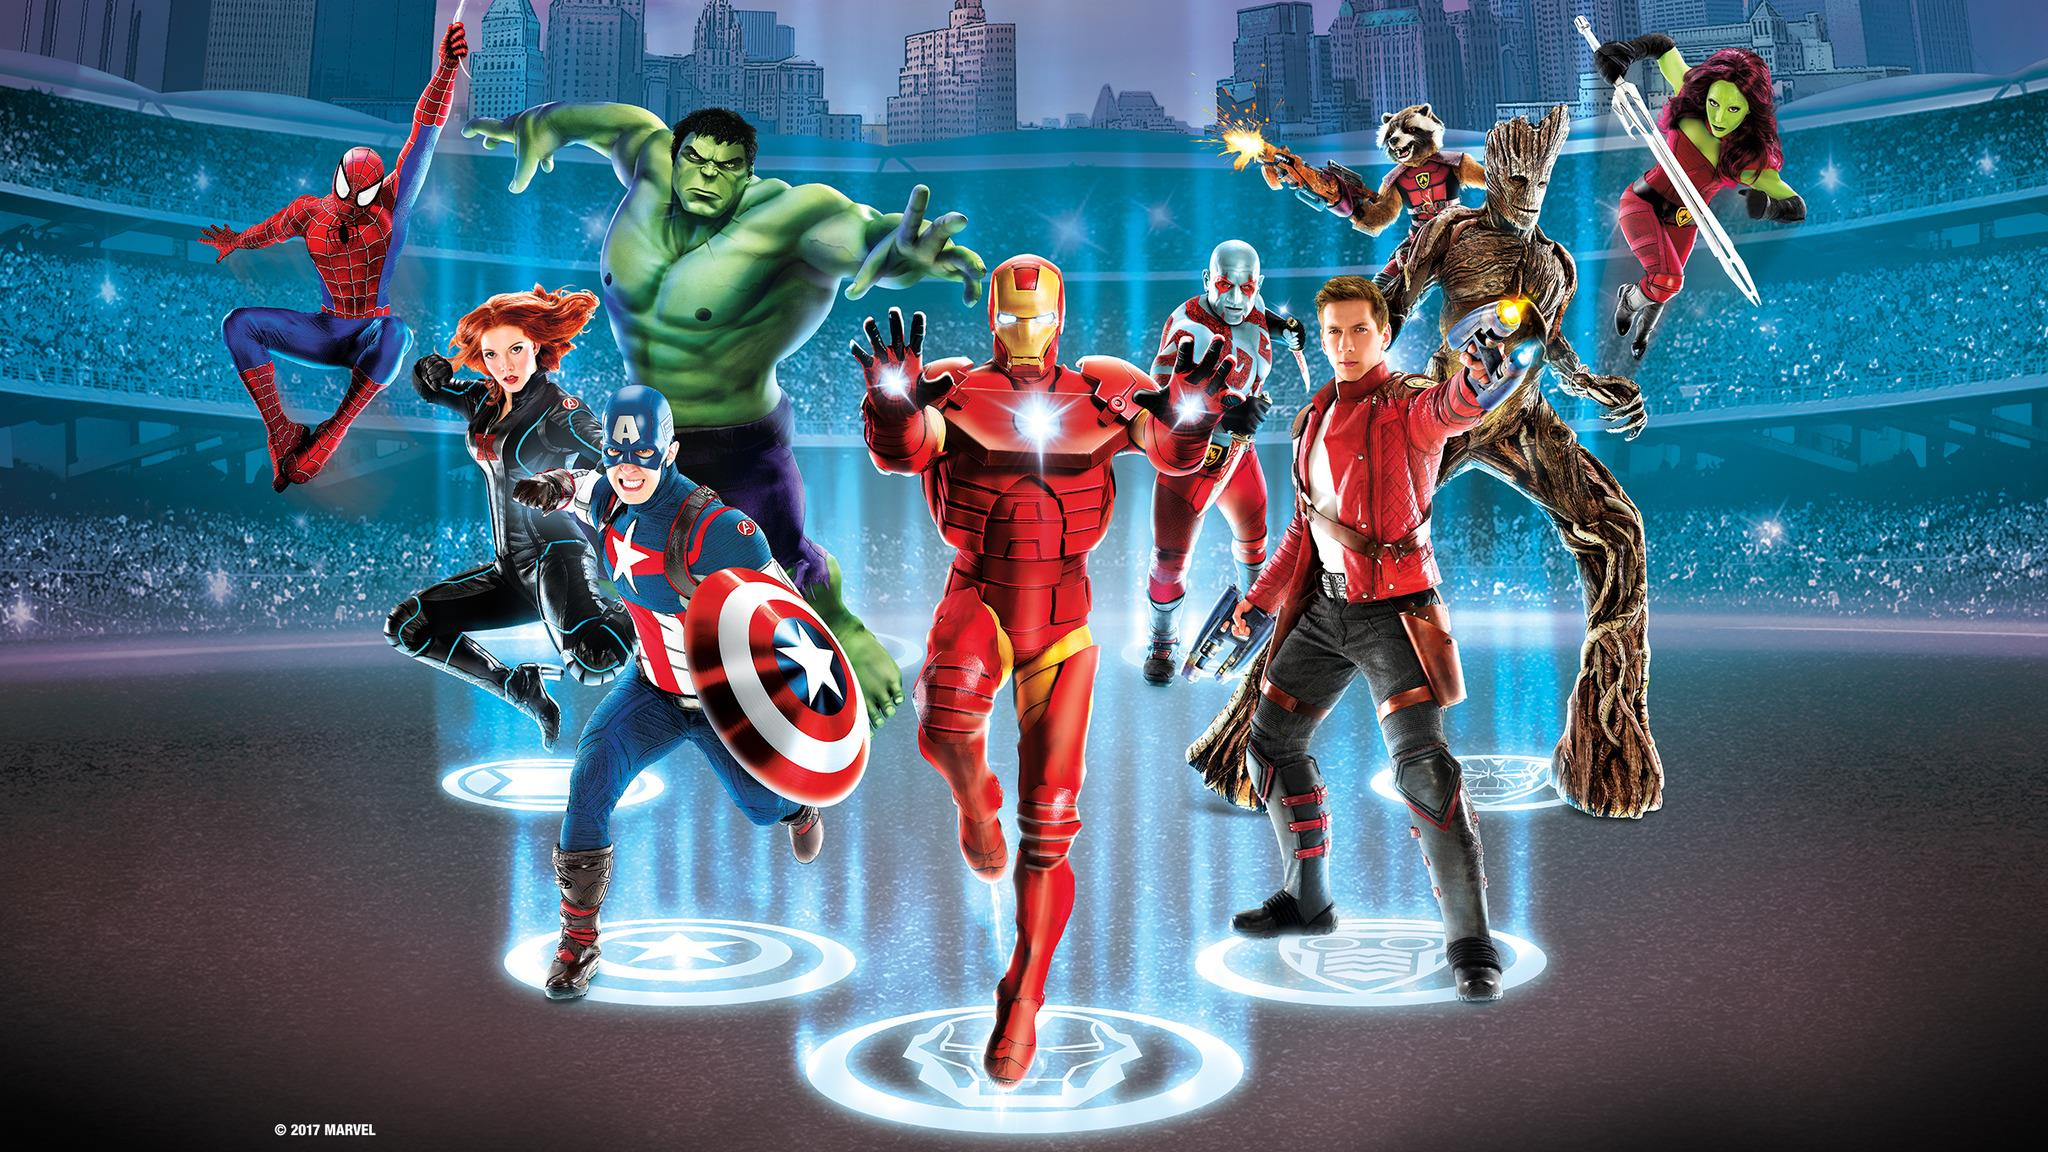 Marvel Malvorlagen Marvel Superhero The Marvel Super: Marvel Universe LIVE! Super Hero Training Camp